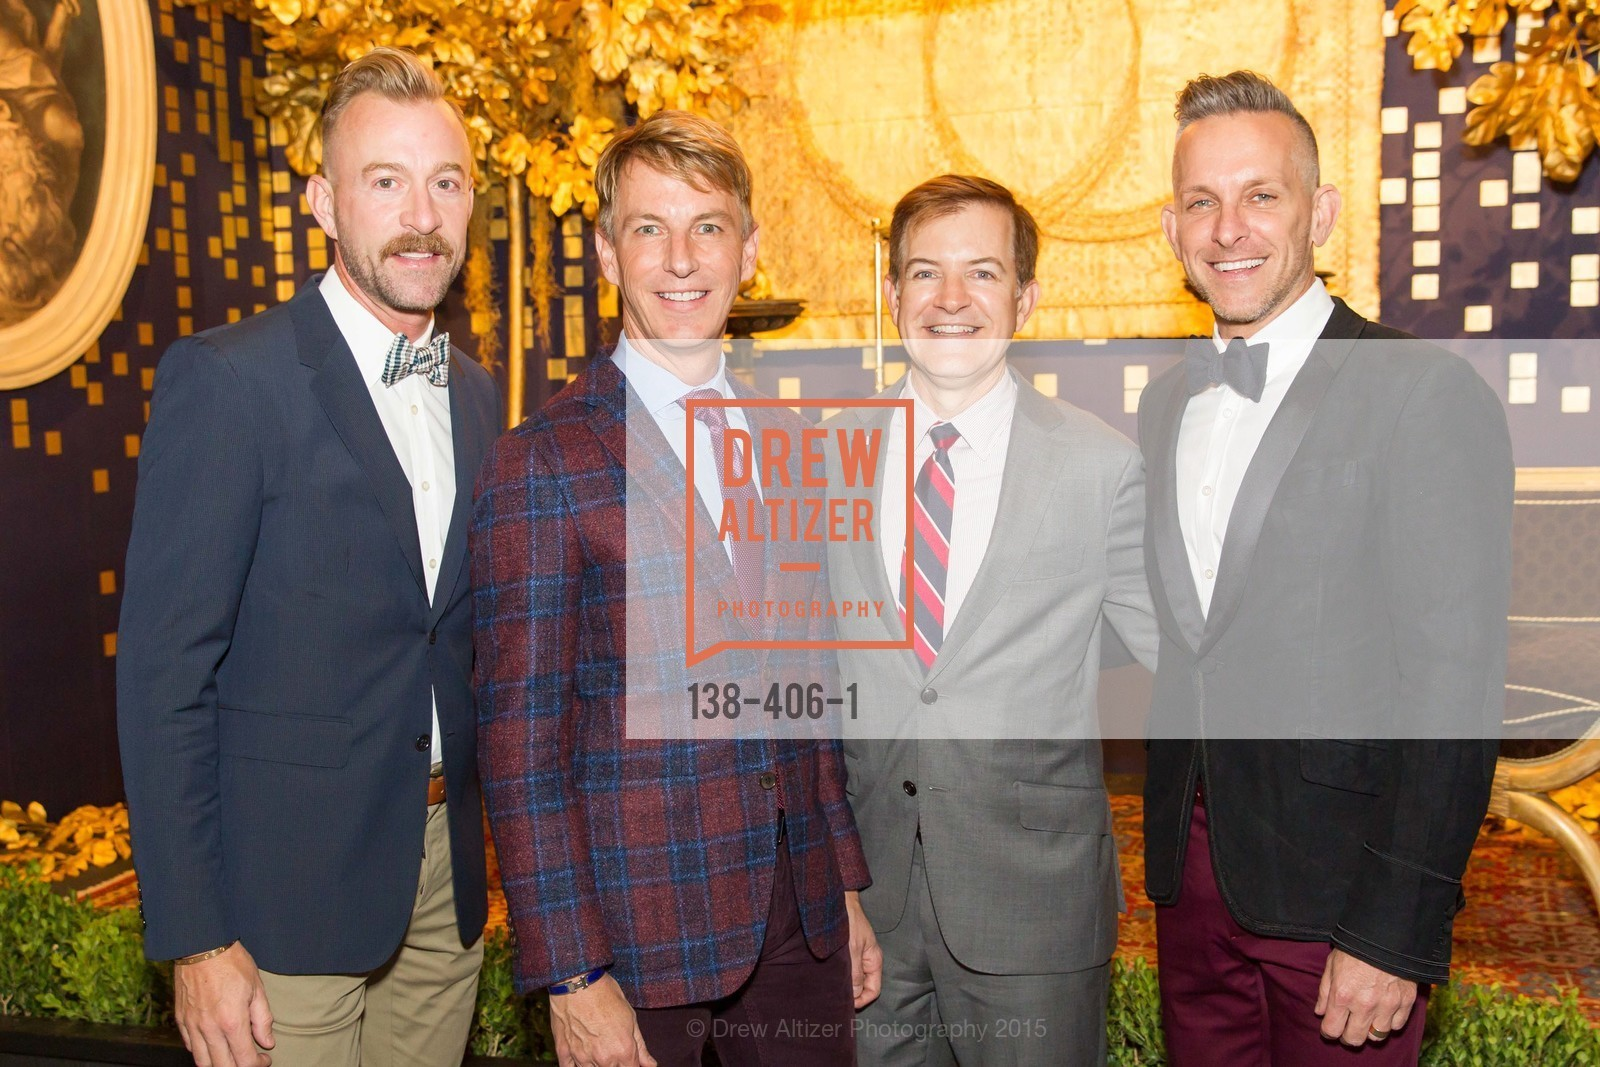 Michael Purdy, Jack Calhoun, Trent Norris, Jay Jeffers, The San Francisco Fall Antiques Show, Festival Pavilion, Fort Mason, October 21st, 2015,Drew Altizer, Drew Altizer Photography, full-service agency, private events, San Francisco photographer, photographer california